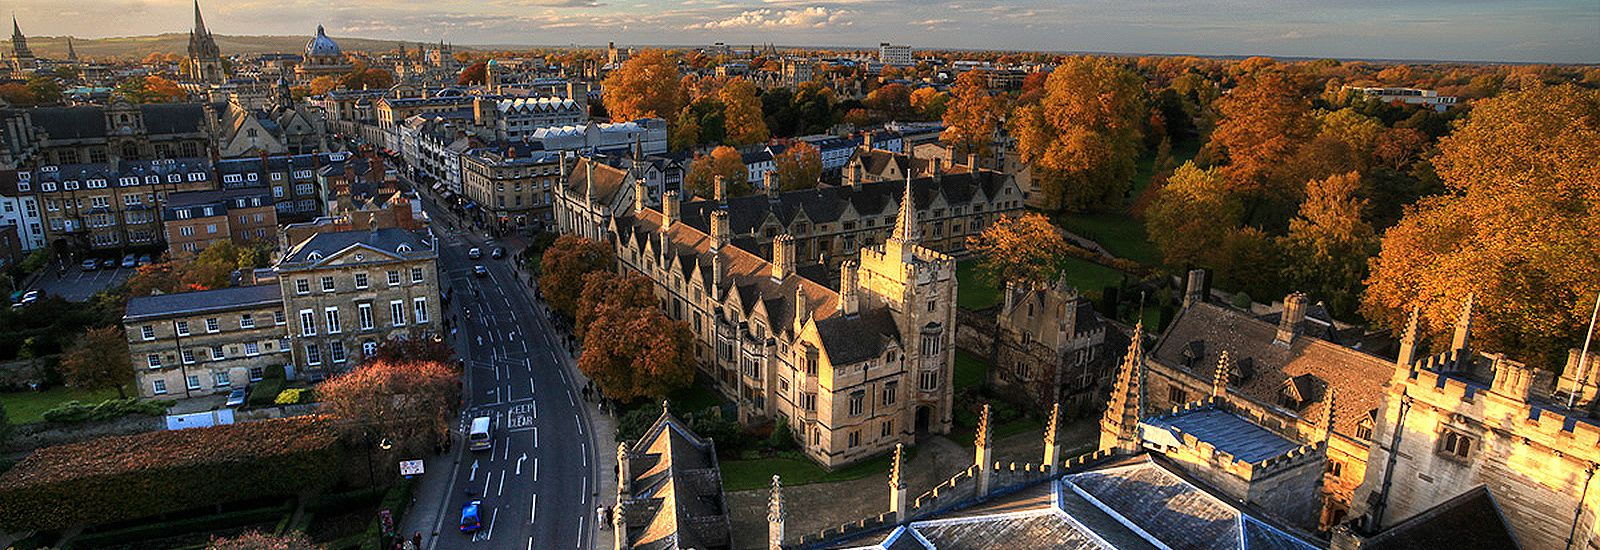 The Oxford skyline in autumn